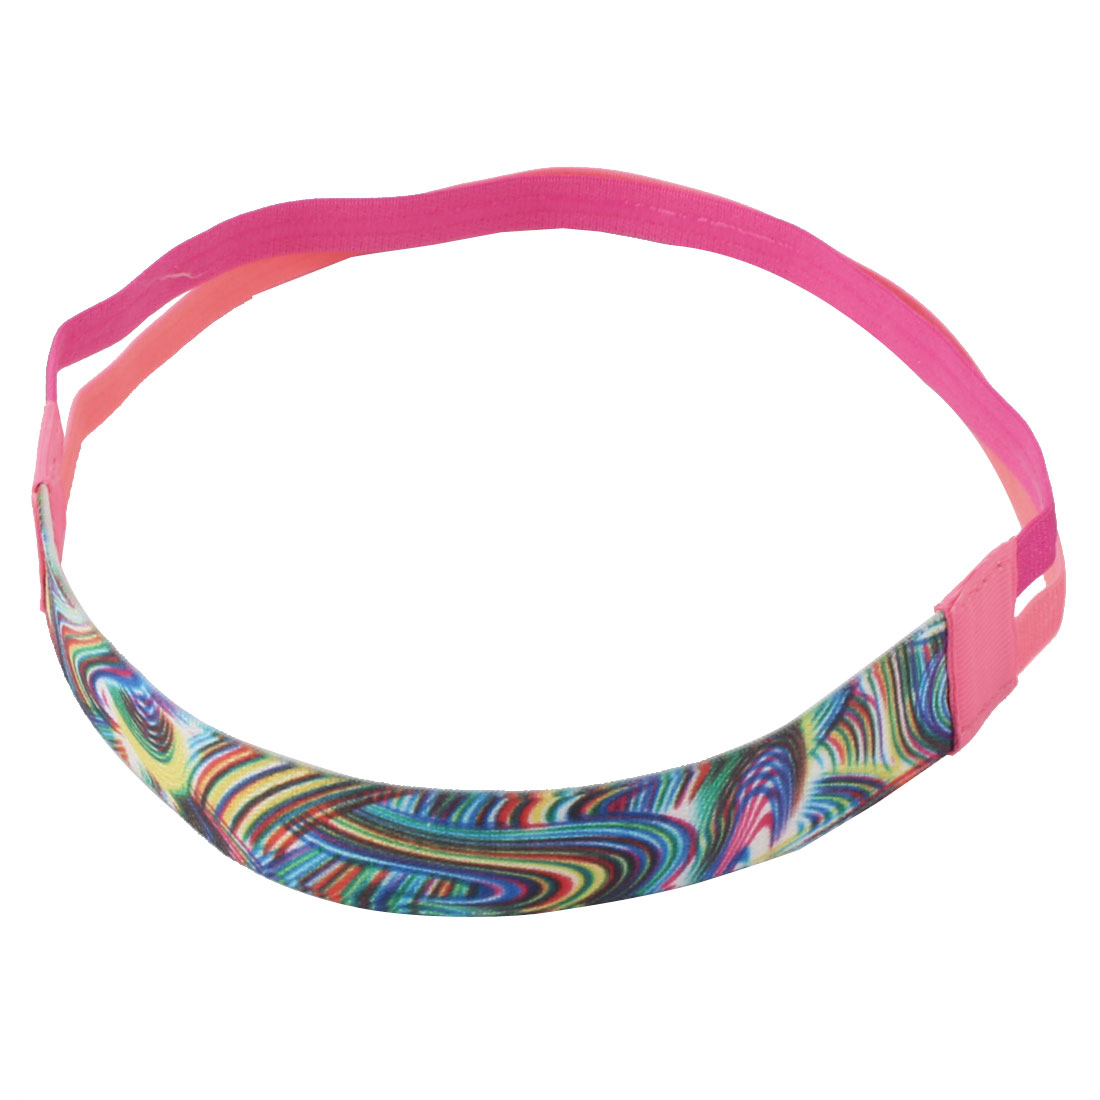 Exercise Silicone Double Line Design Non-slip Sports Headband Headwrap Pink Fuchsia